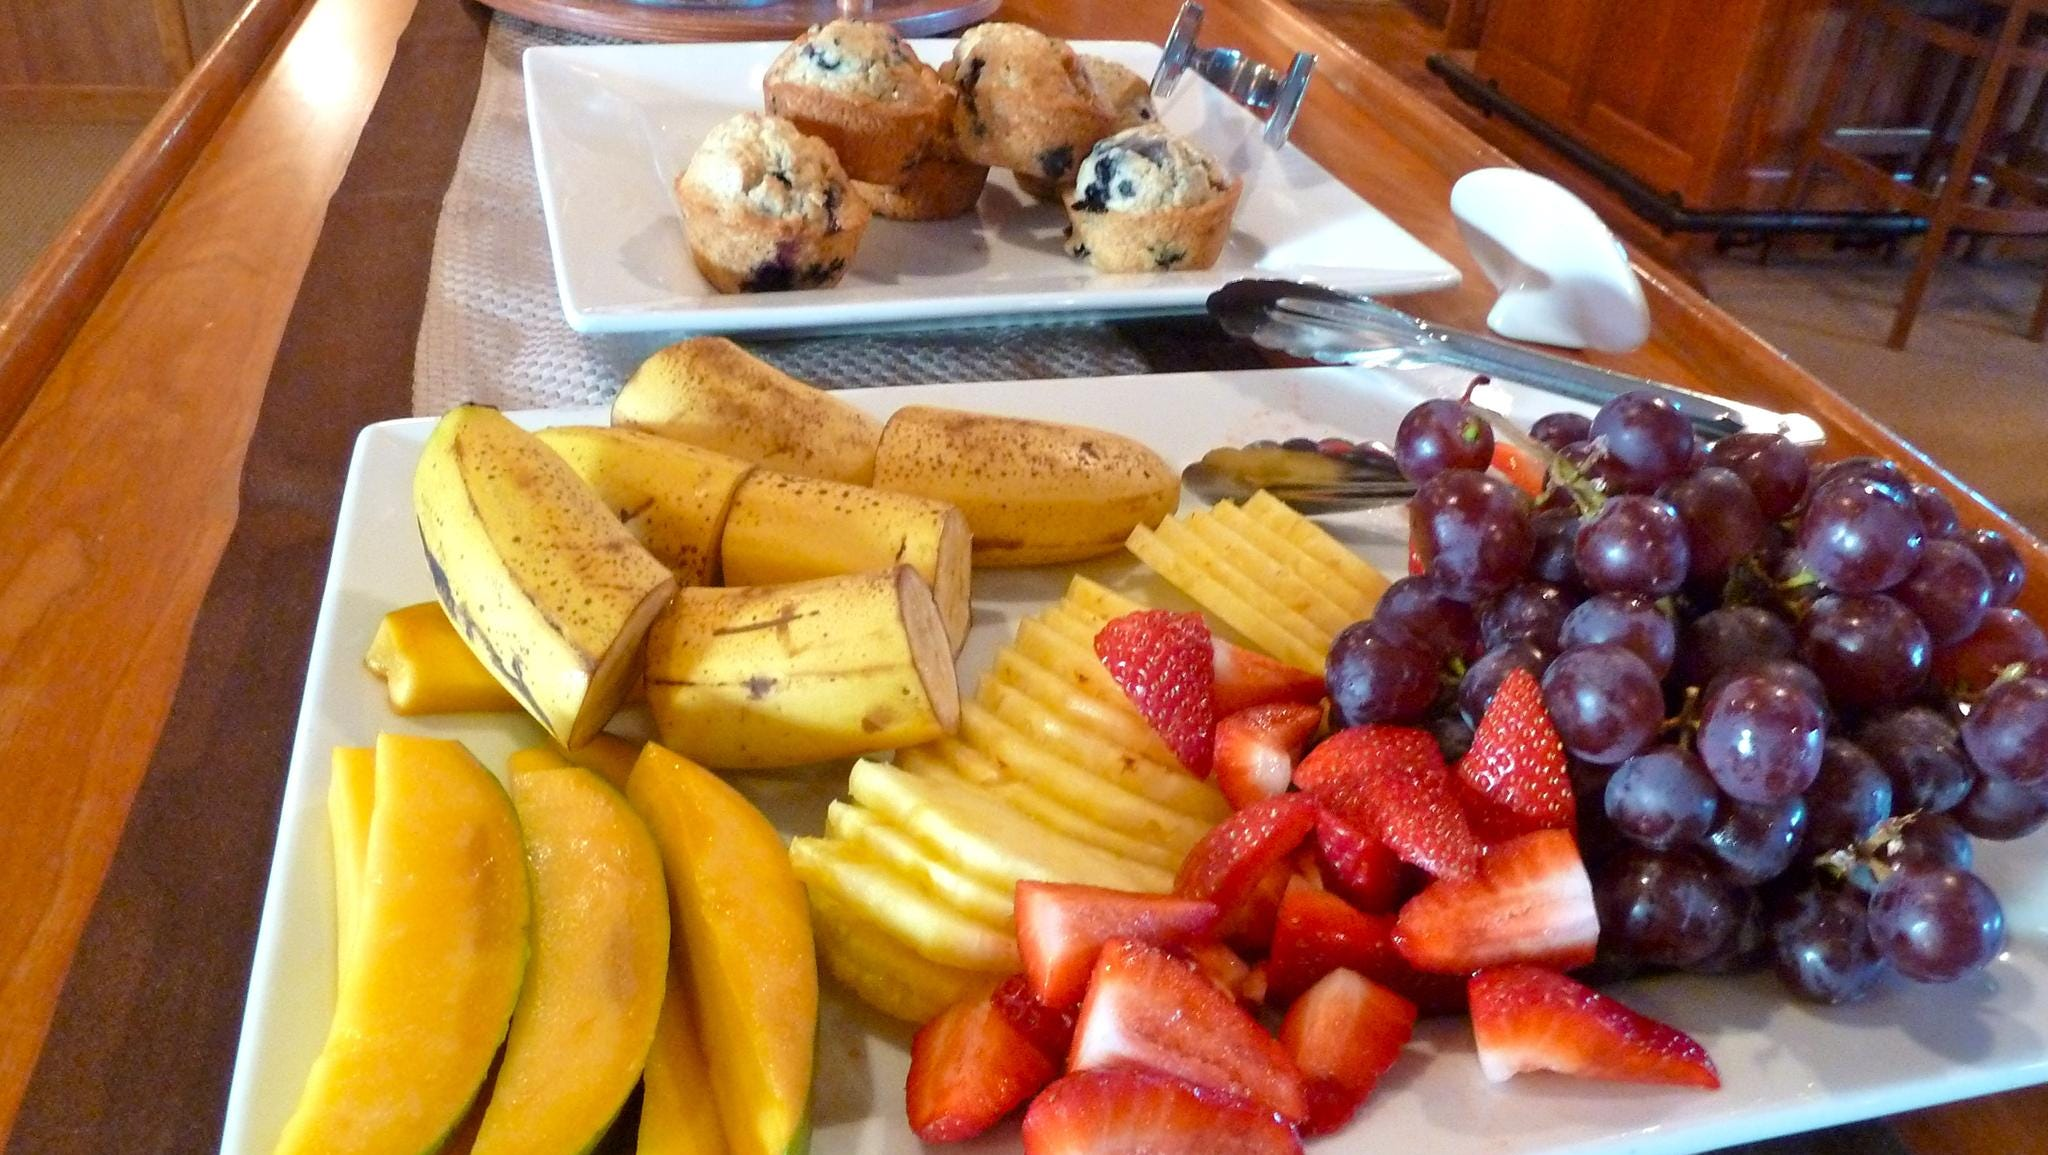 A continental breakfast is available each morning, featuring freshly baked pastries and muffins, fresh fruit, a selection of yogurts, bread and cereals.